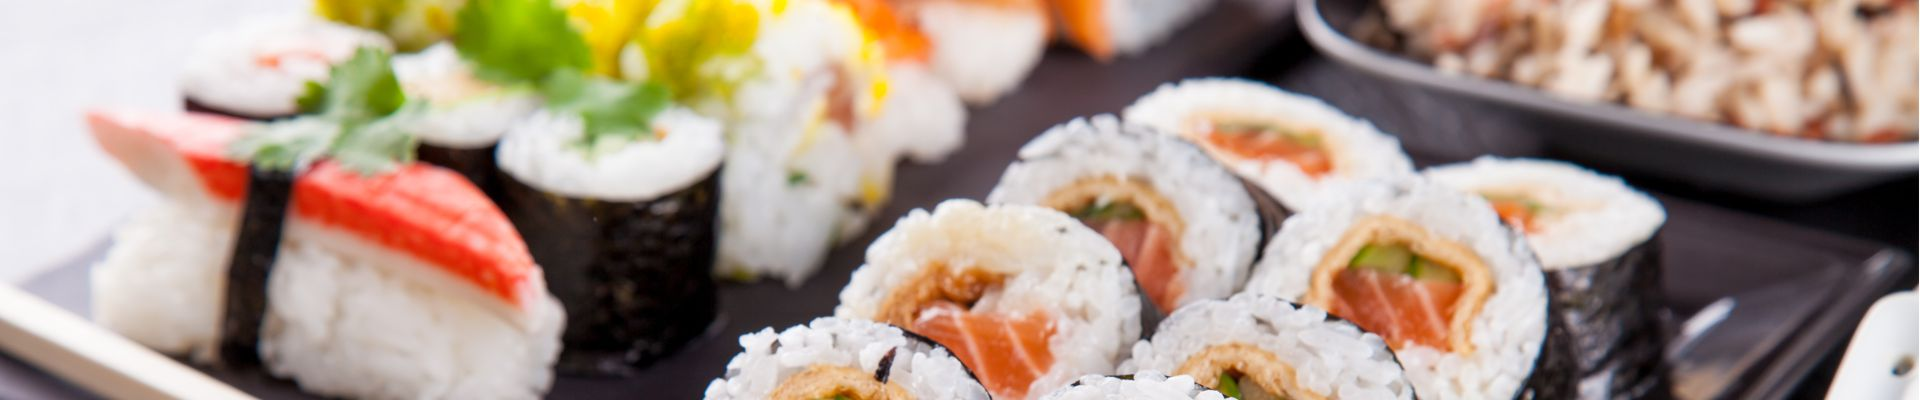 bg_catering_sushi_h400